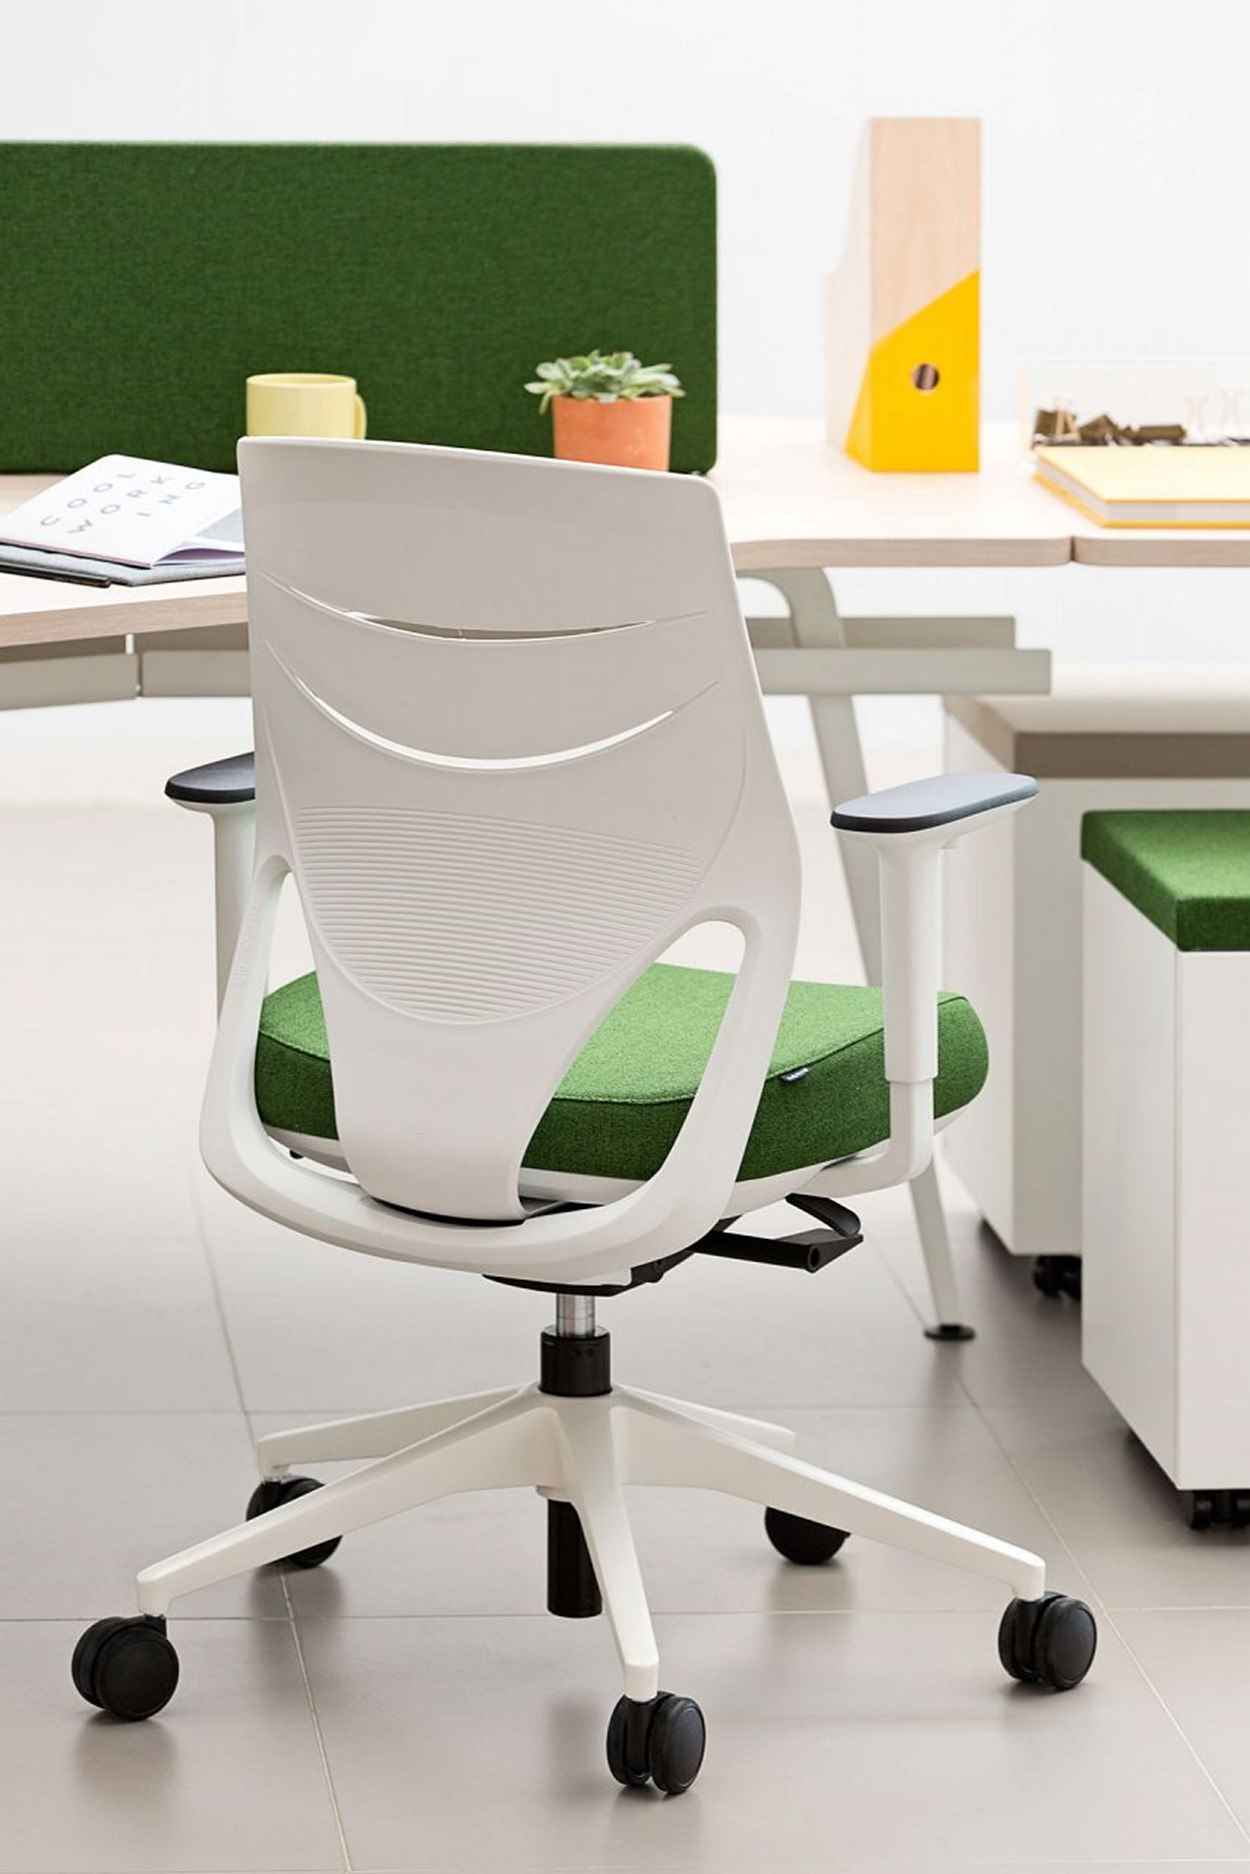 actiu-efit-office-chair-7.jpg